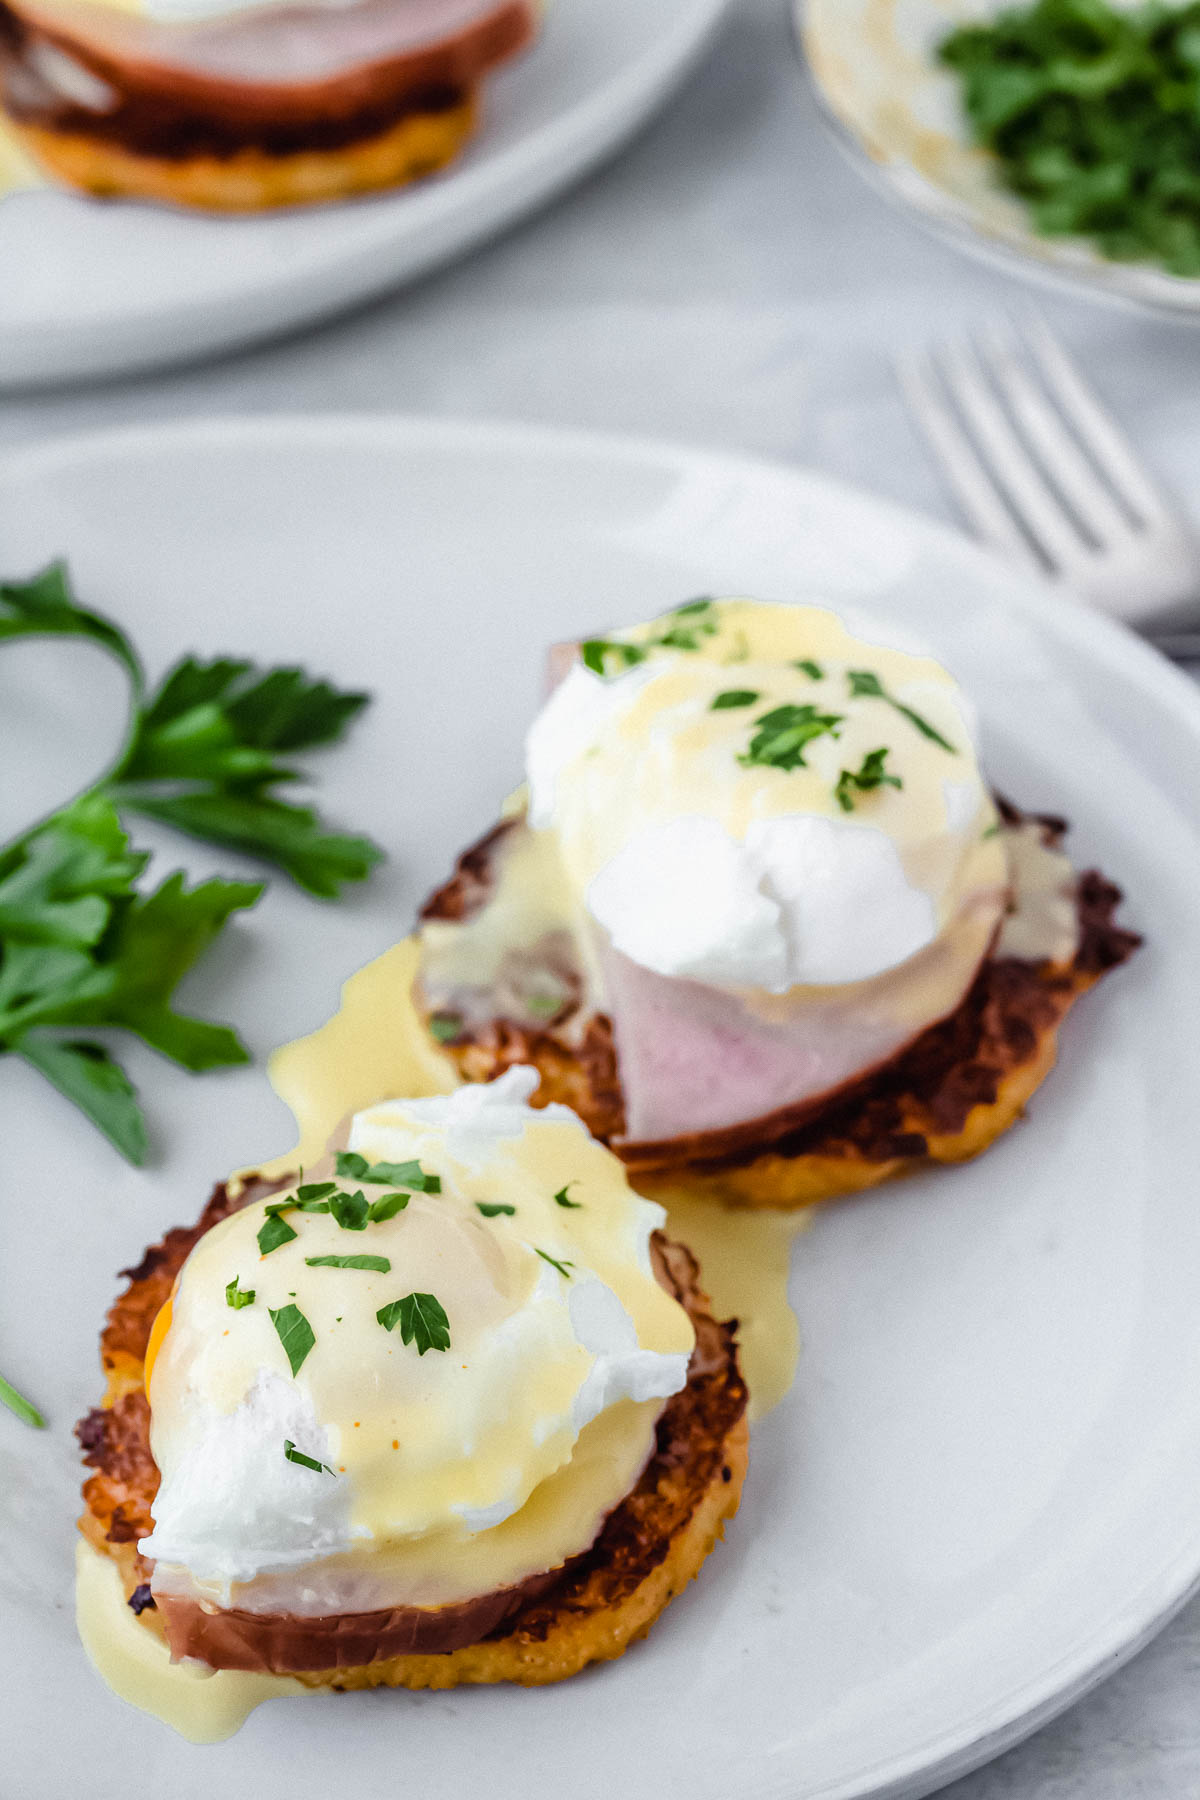 Keto eggs benedict on cauliflower toasts on a white plate with a second plate and fork in the background